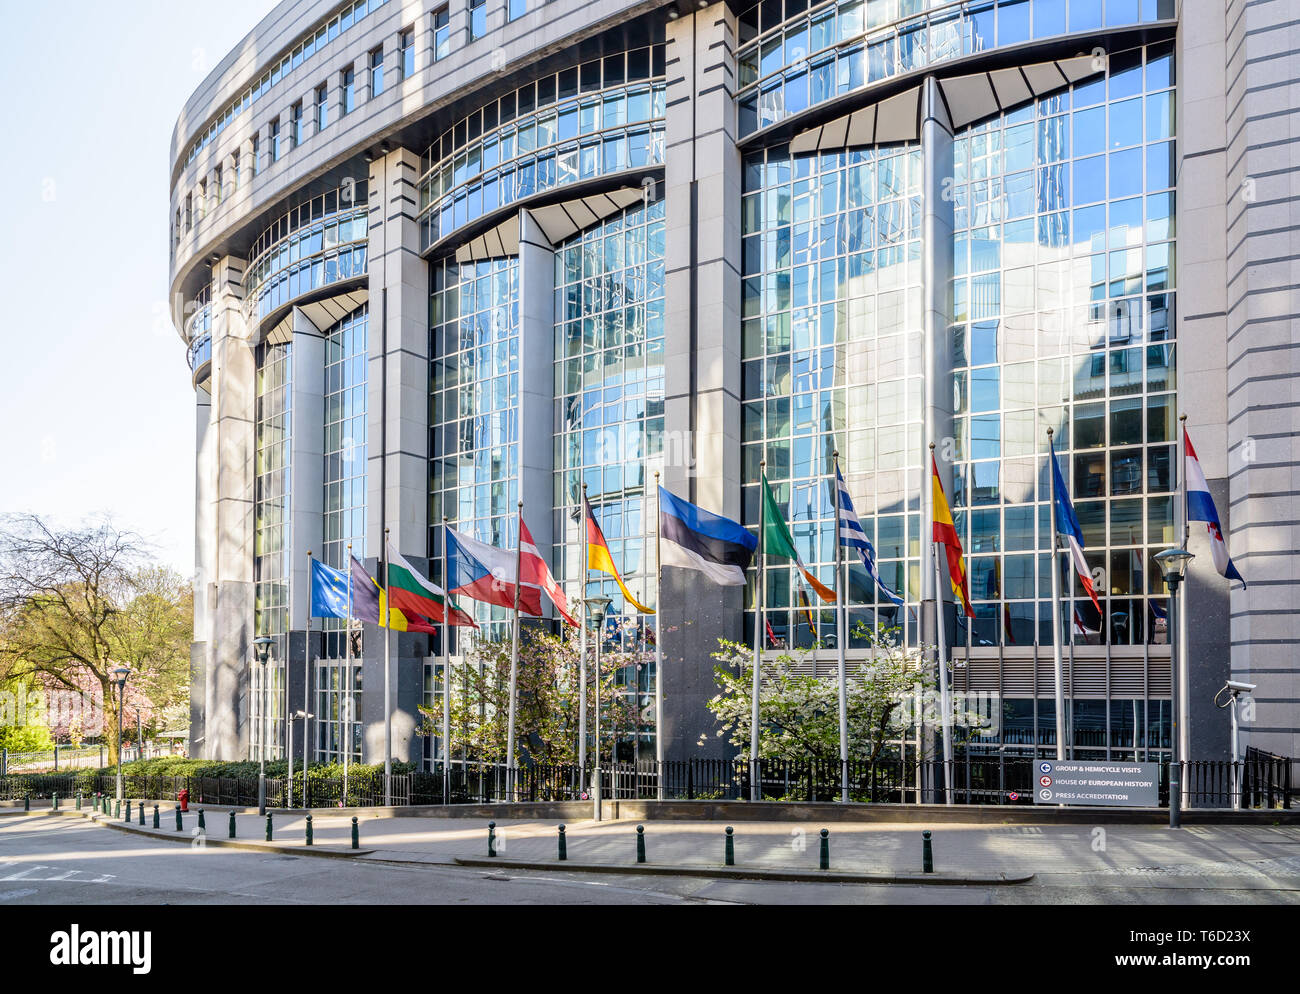 Western side of the Paul-Henri Spaak building, seat of the European Parliament hemicycle in Brussels, Belgium, with flags of member states. - Stock Image